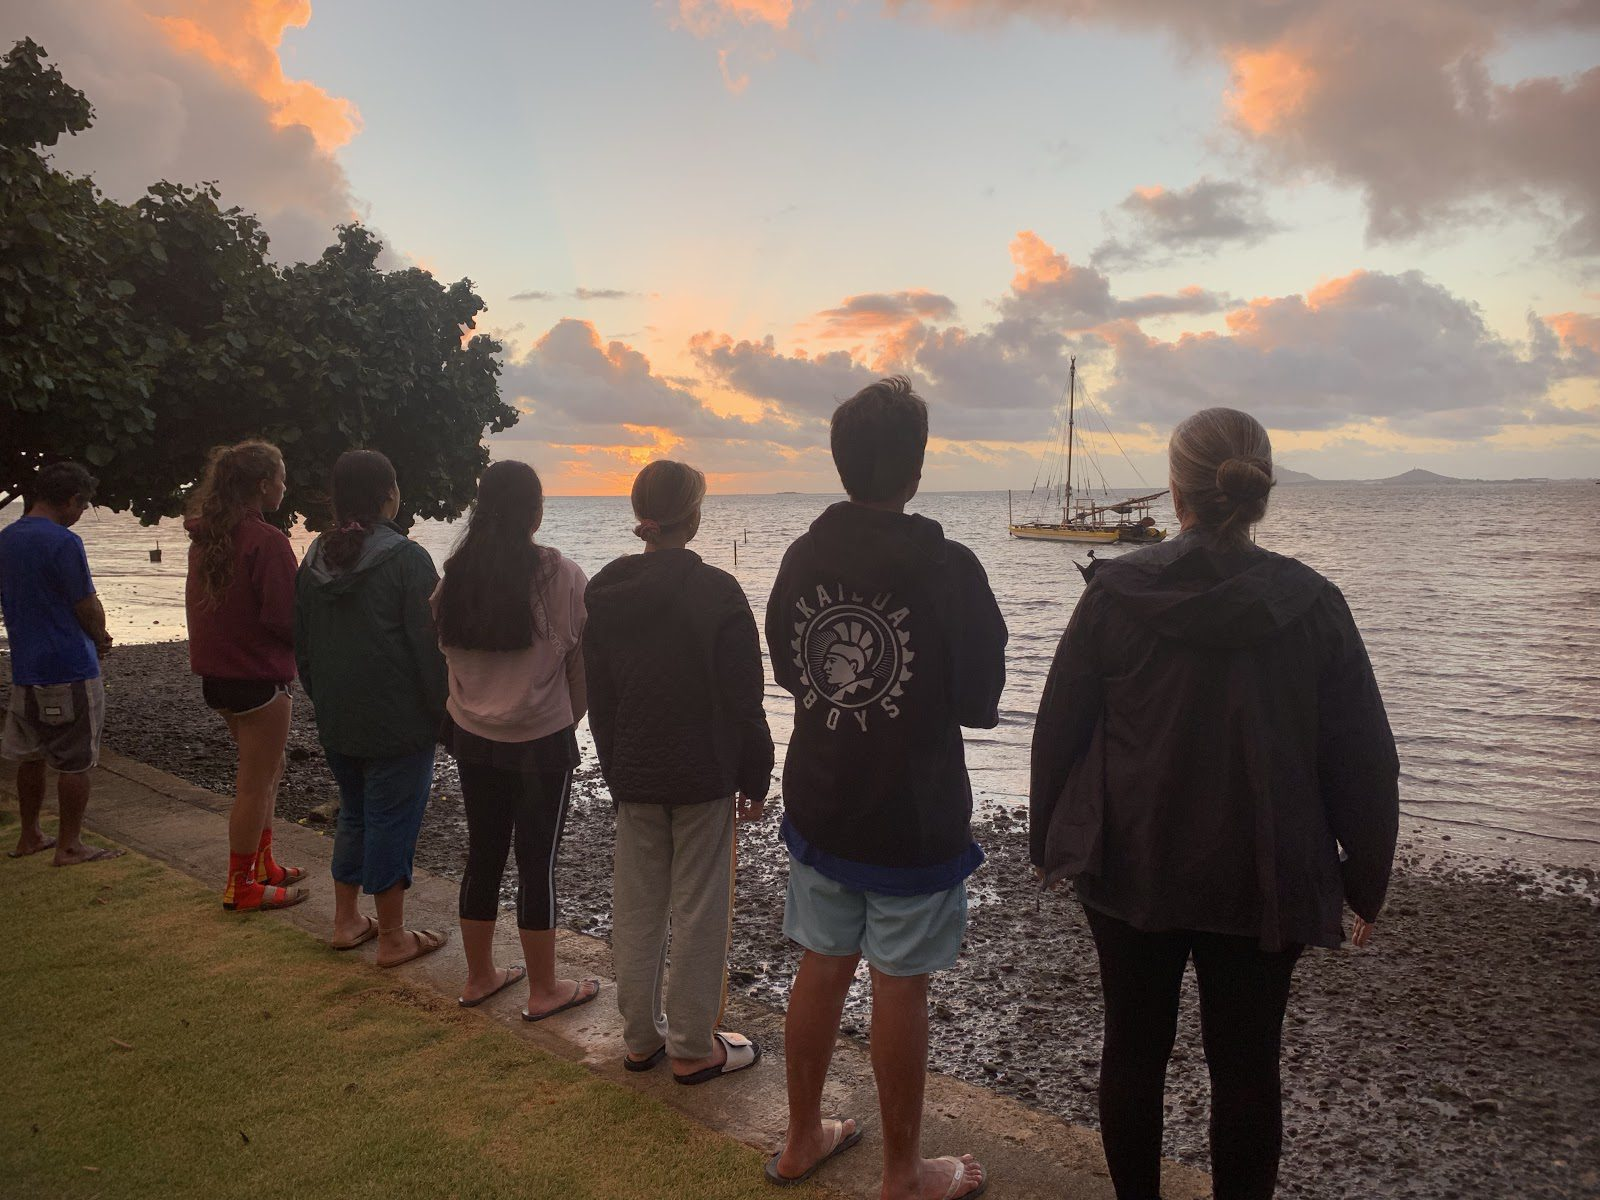 students standing at the shore looking out onto the horizon